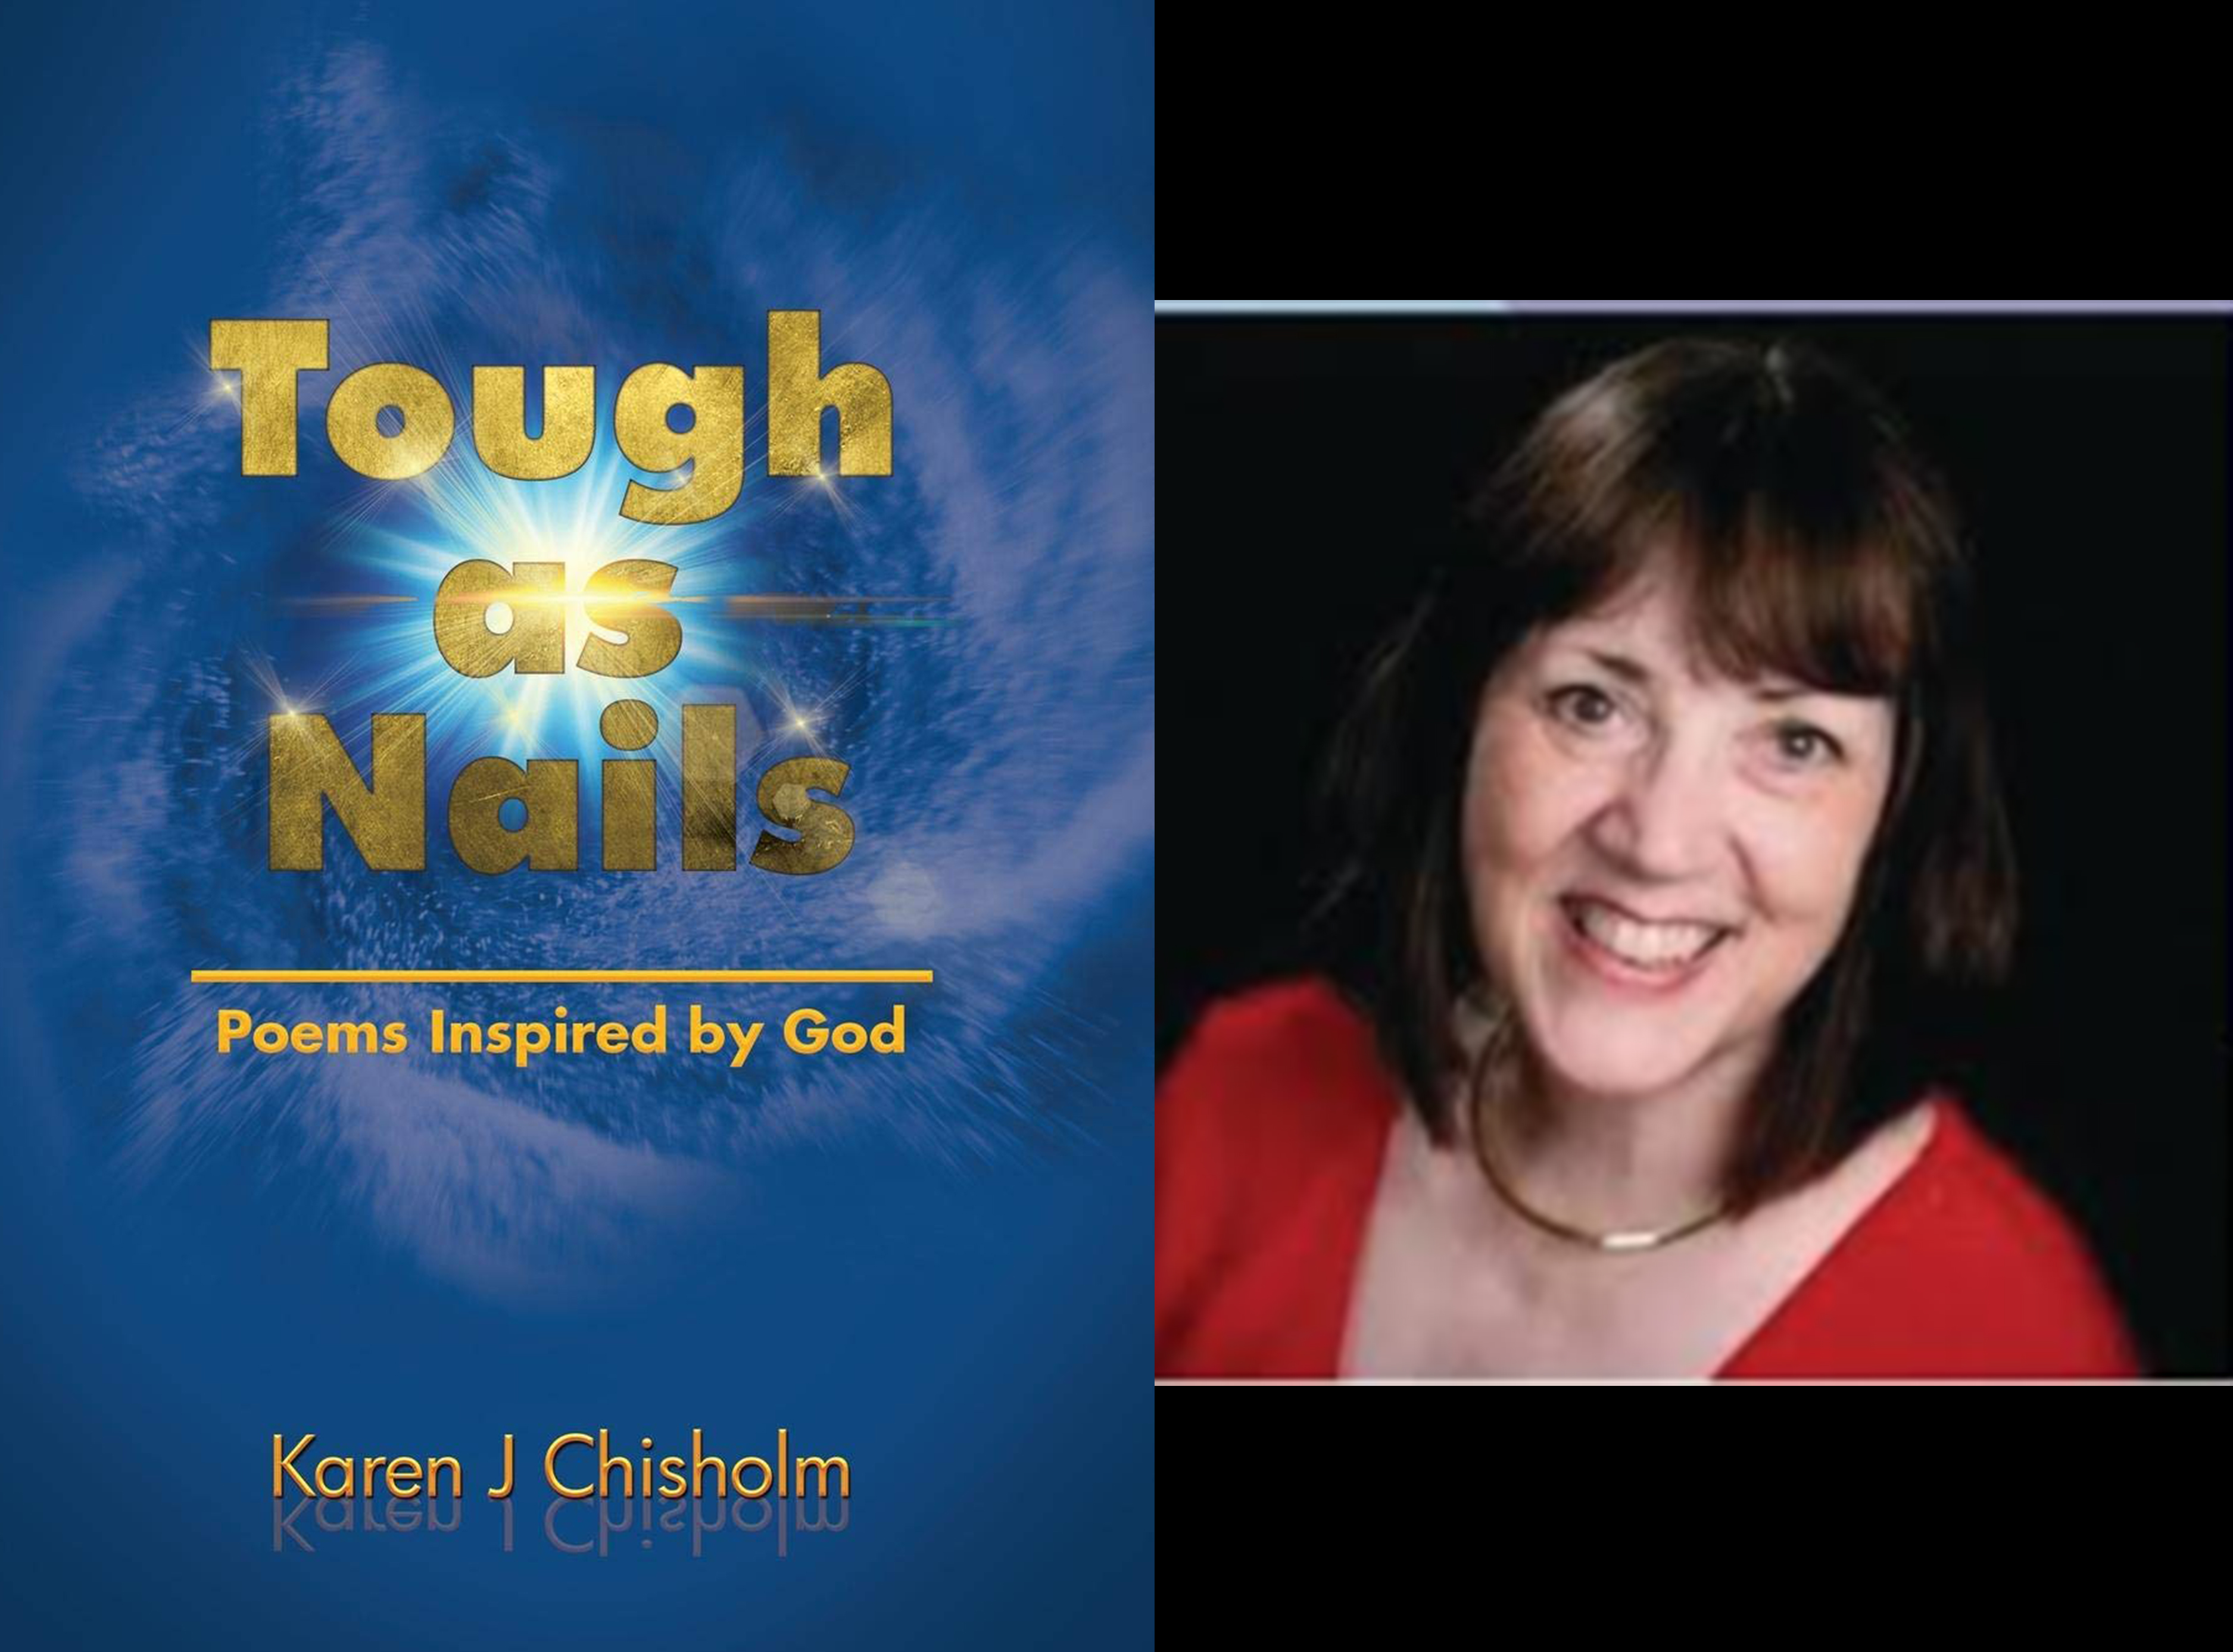 Poet Karen J Chisholm's Latest Creative Act, 'Tough as Nails, Poems Inspired by God' Blesses the World